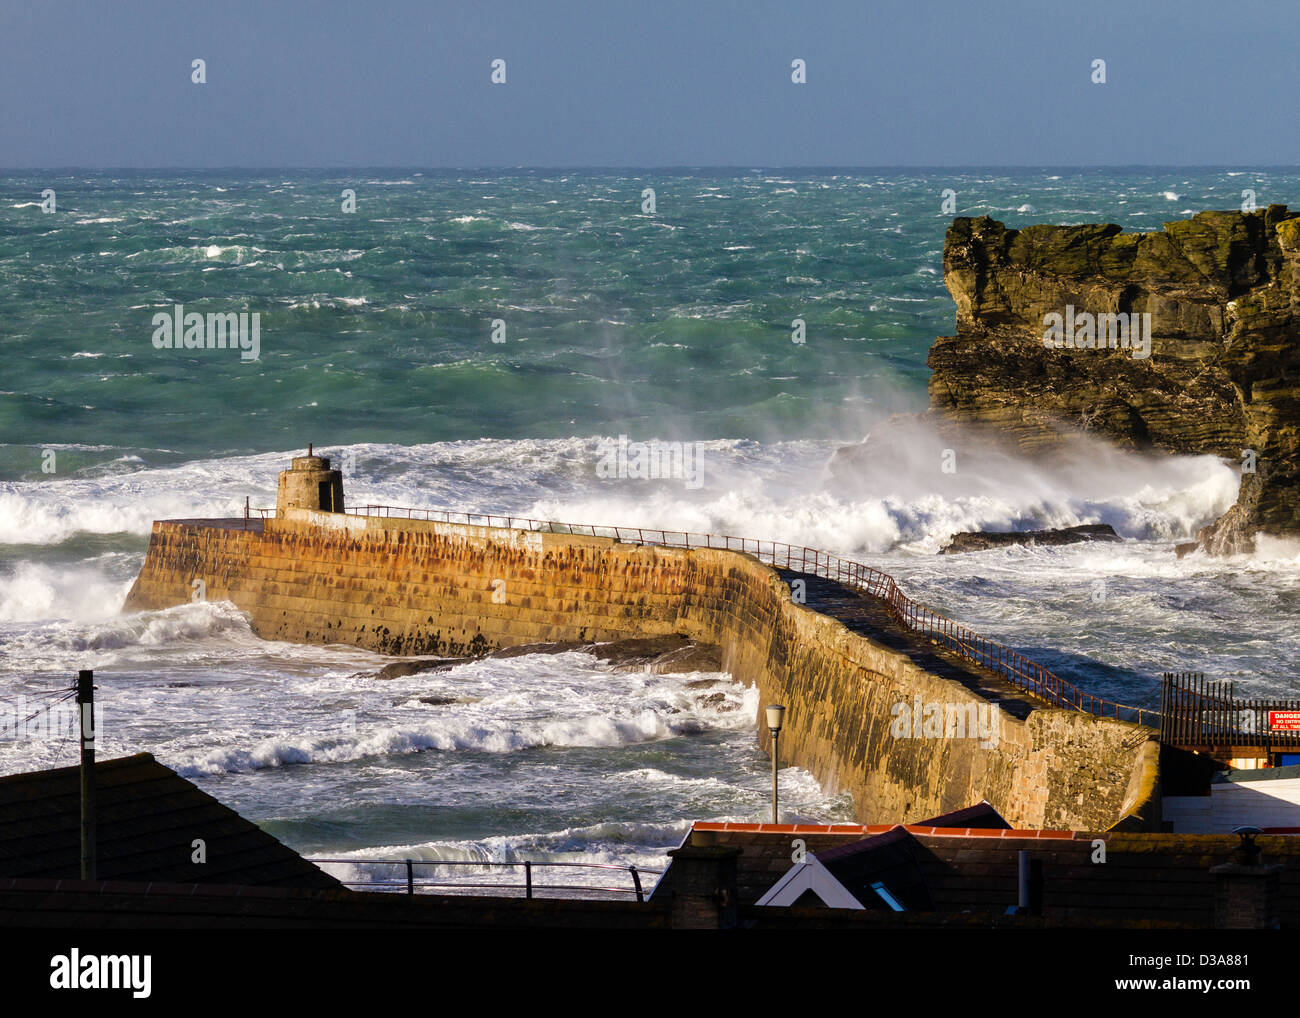 White water, rollers, waves and spume in the mouth of Portreath Harbour - Stock Image